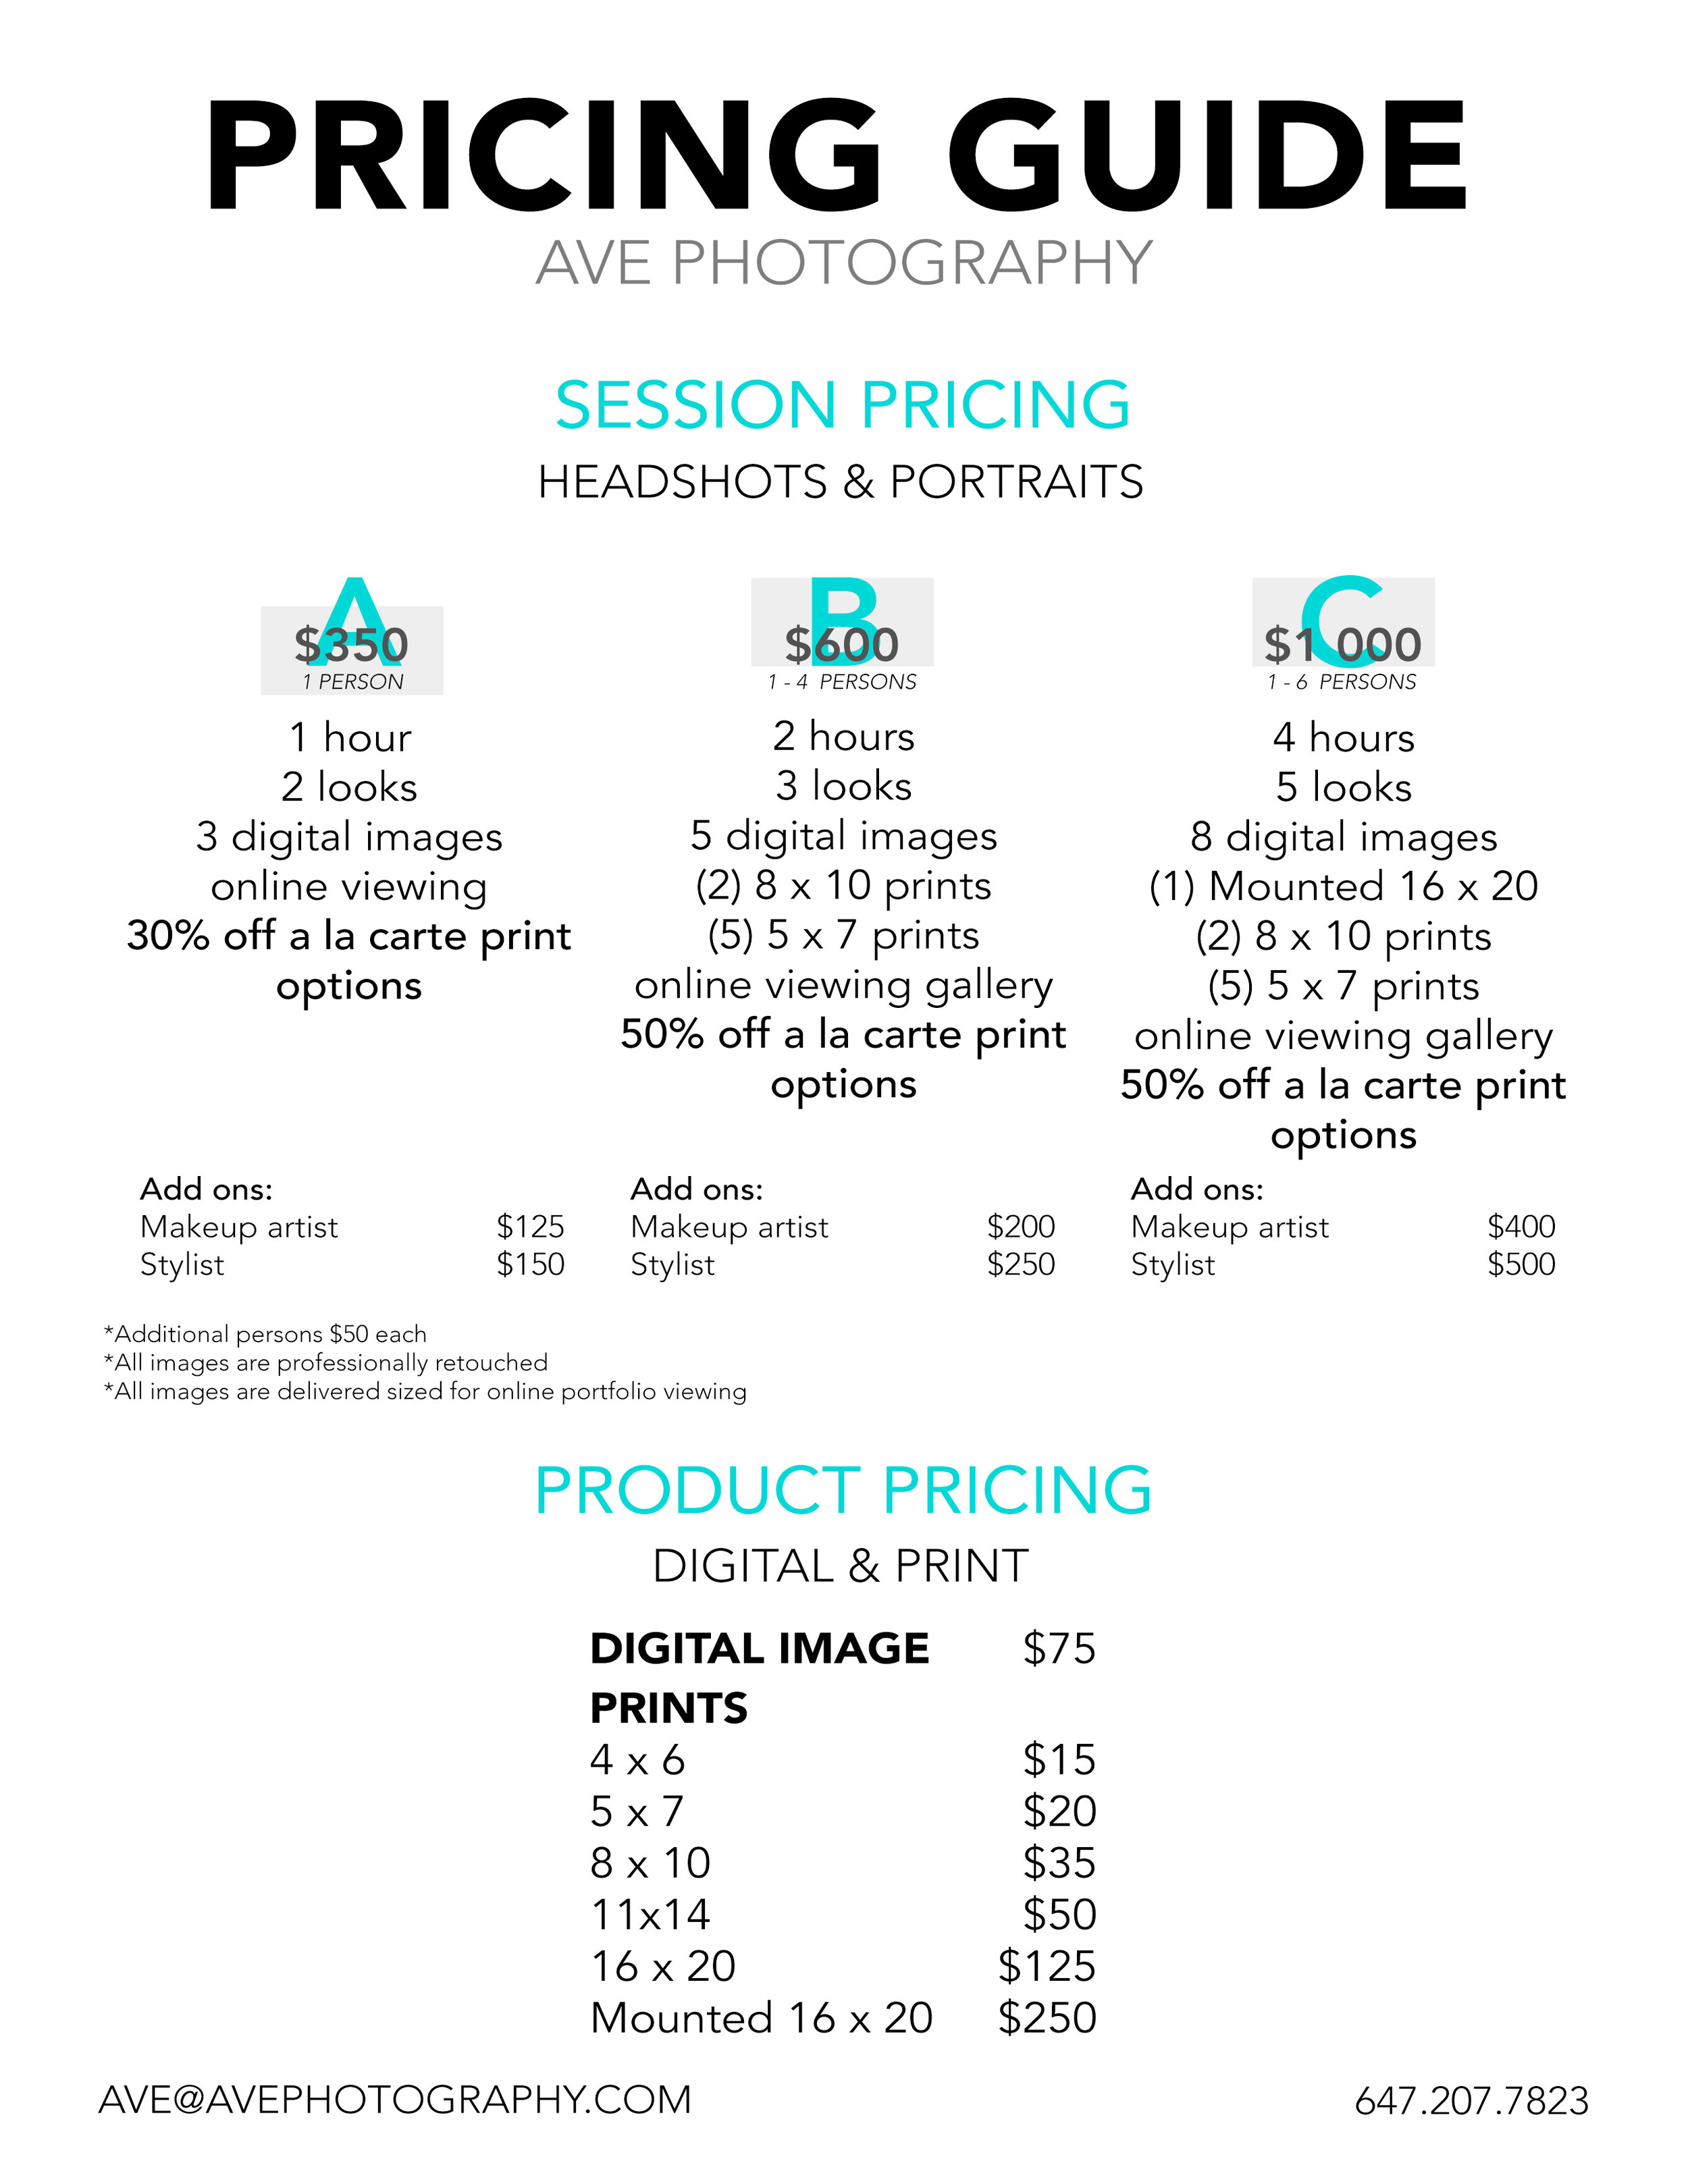 PRICING GUIDE - HEADSHOT PORTRAIT - 2019.jpg